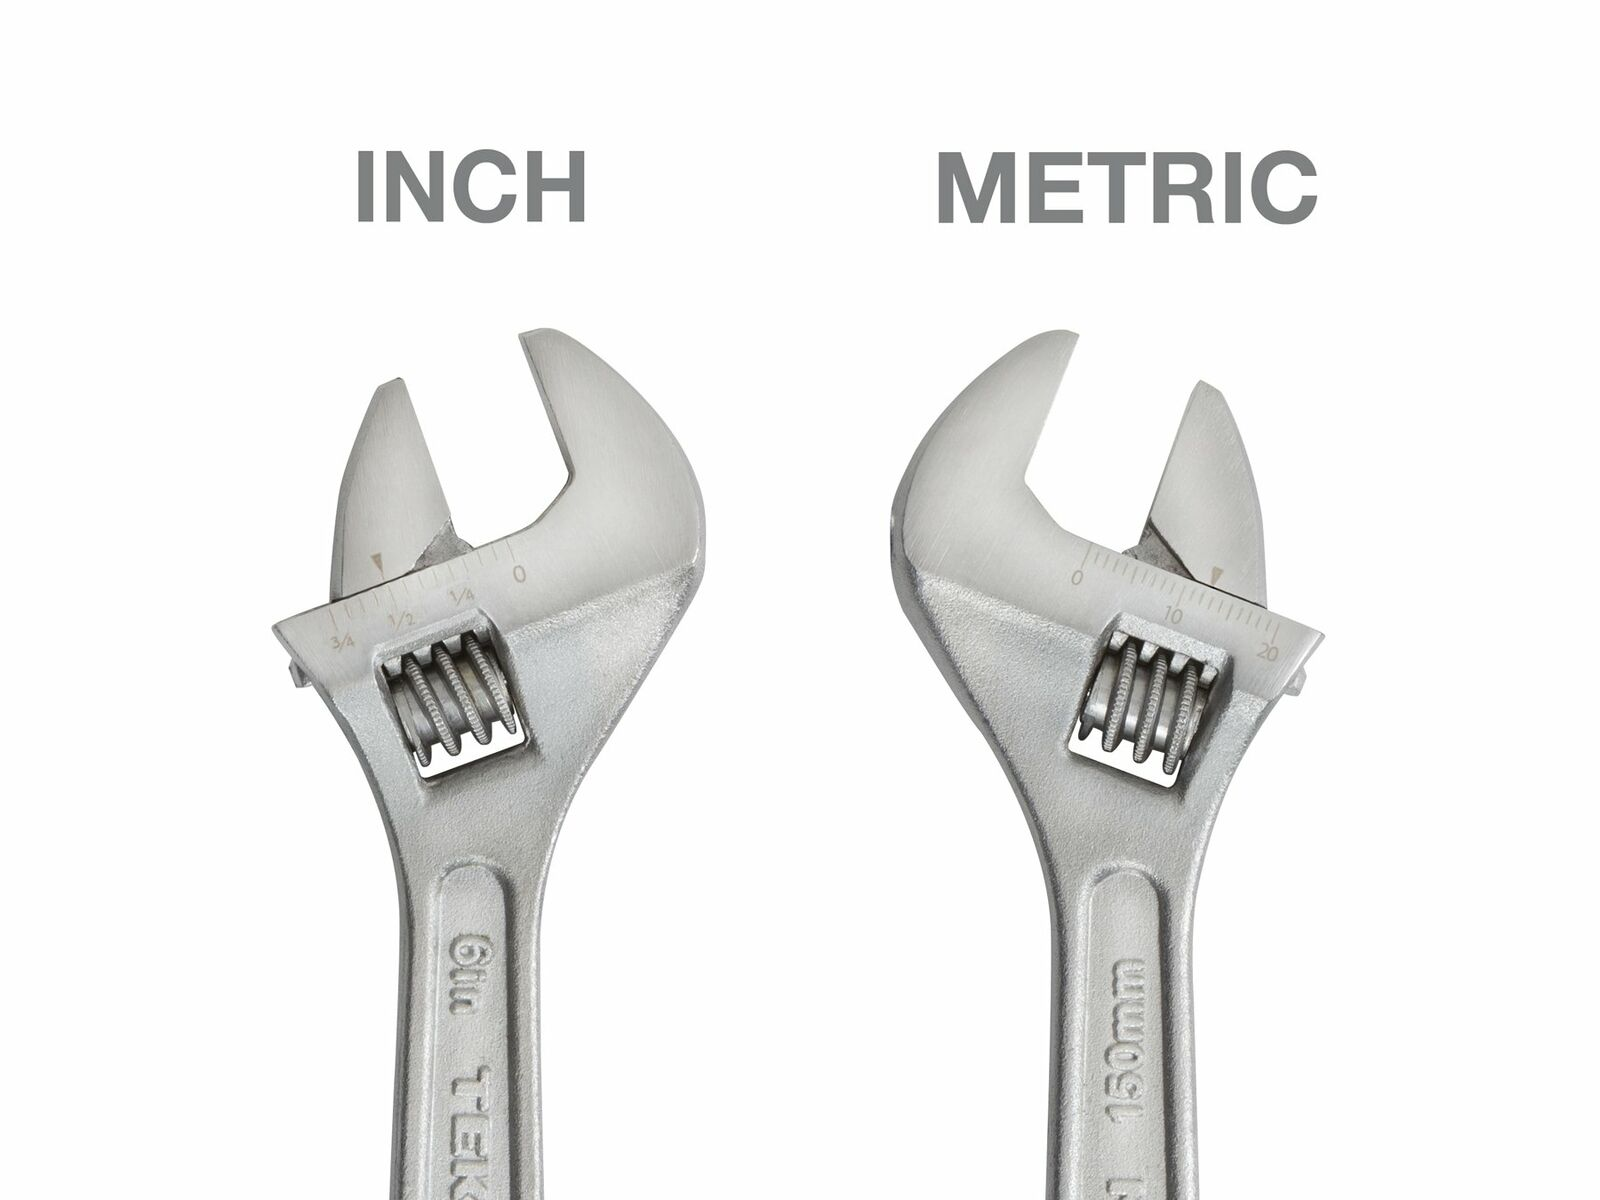 3Pcs Tolsen 6//8//10inch Crescent Adjustable Wrench Set SAE Metric Scale